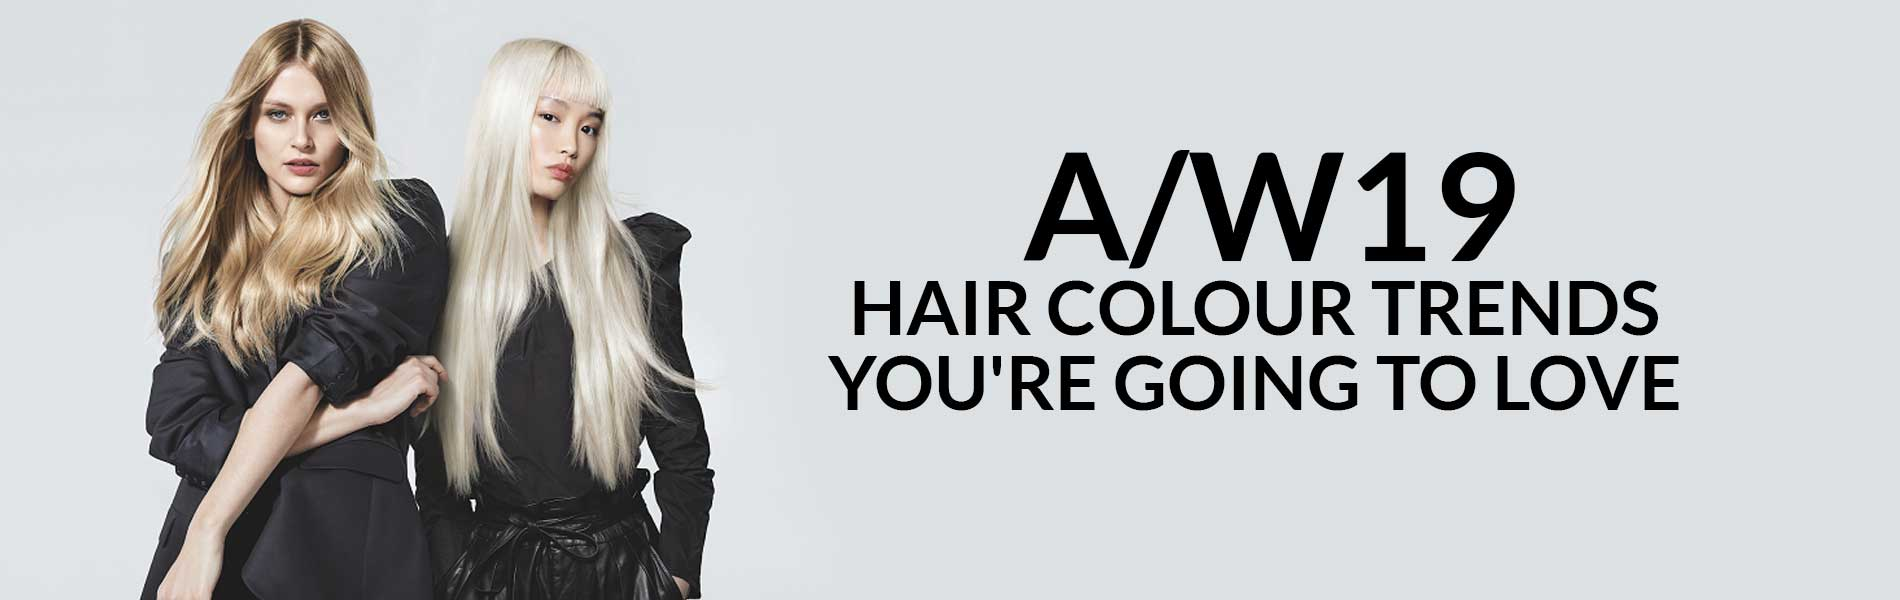 AW19 Hair Colour Trends Youre Going To Love